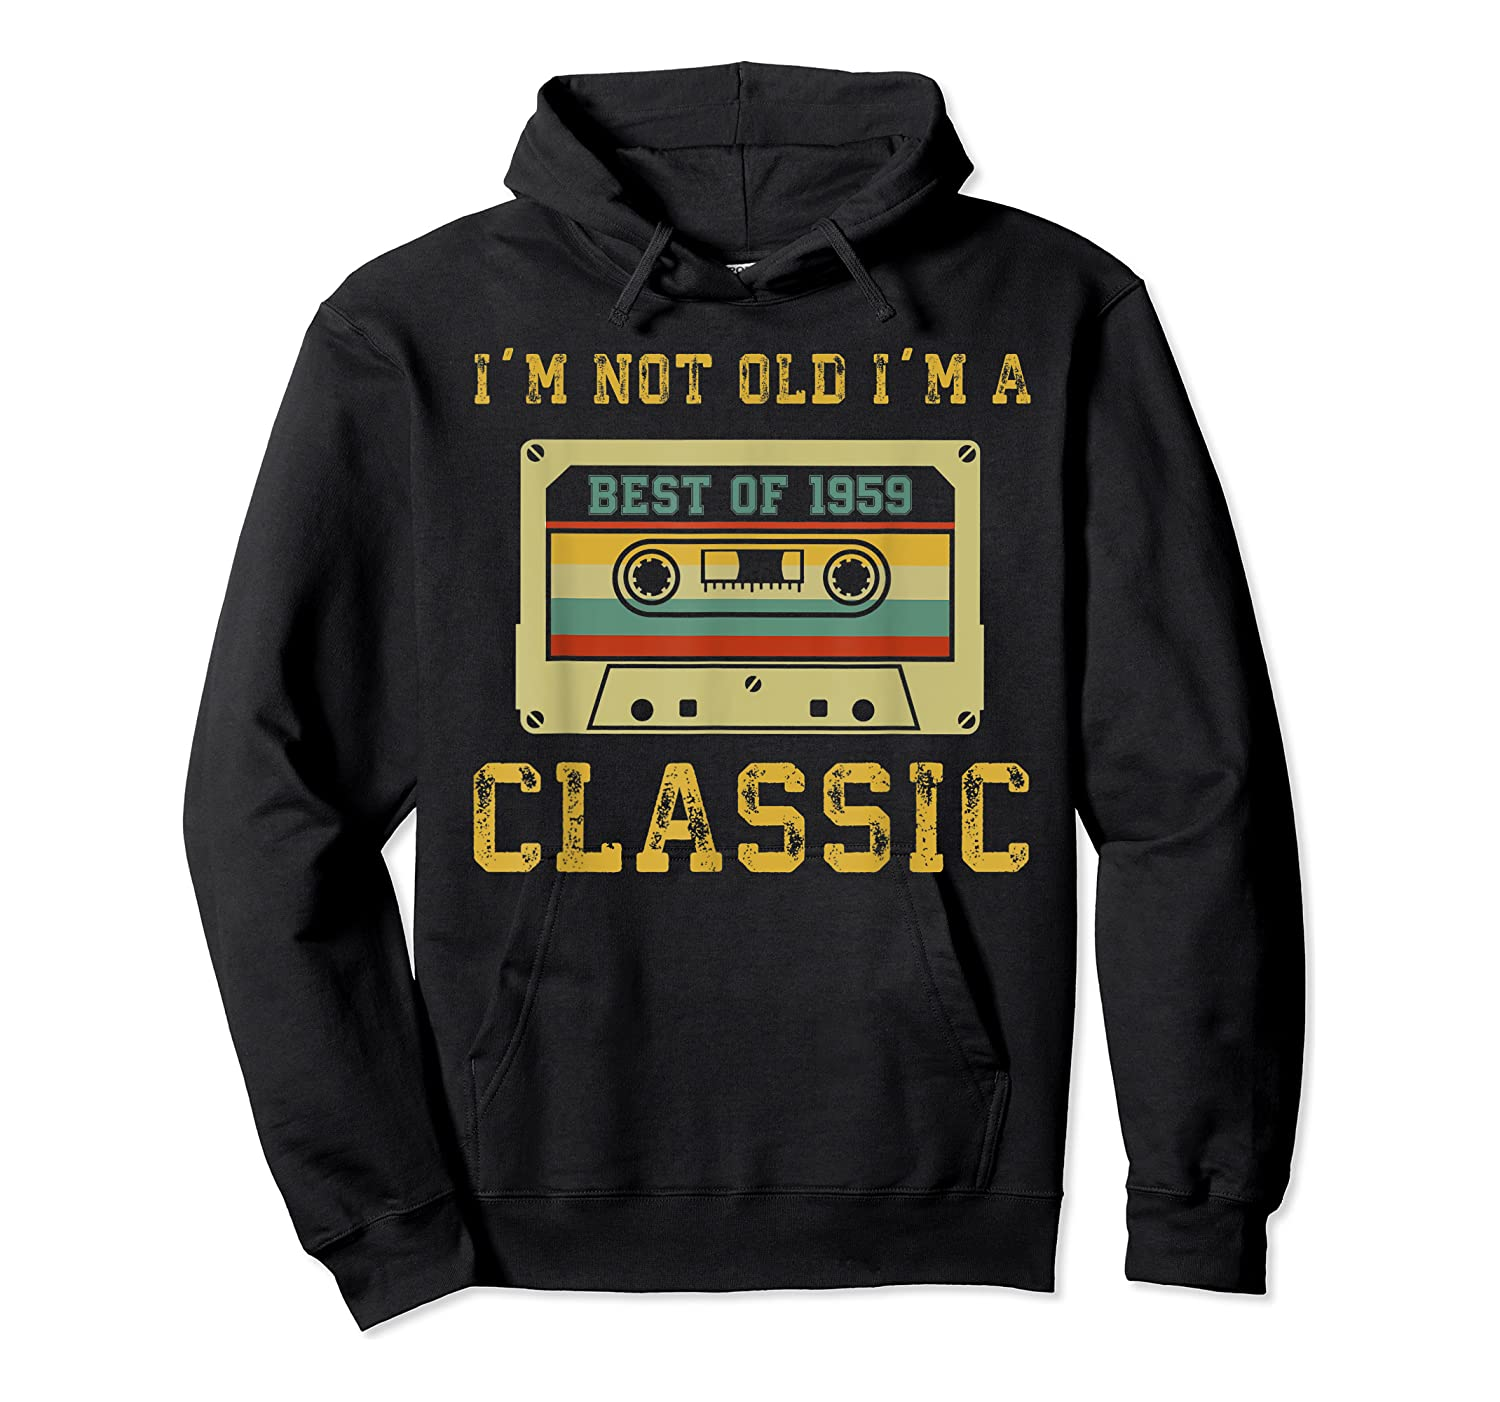 Vintage Cassette I'm Not Old I'm A Classic 1959 60th Shirts Unisex Pullover Hoodie